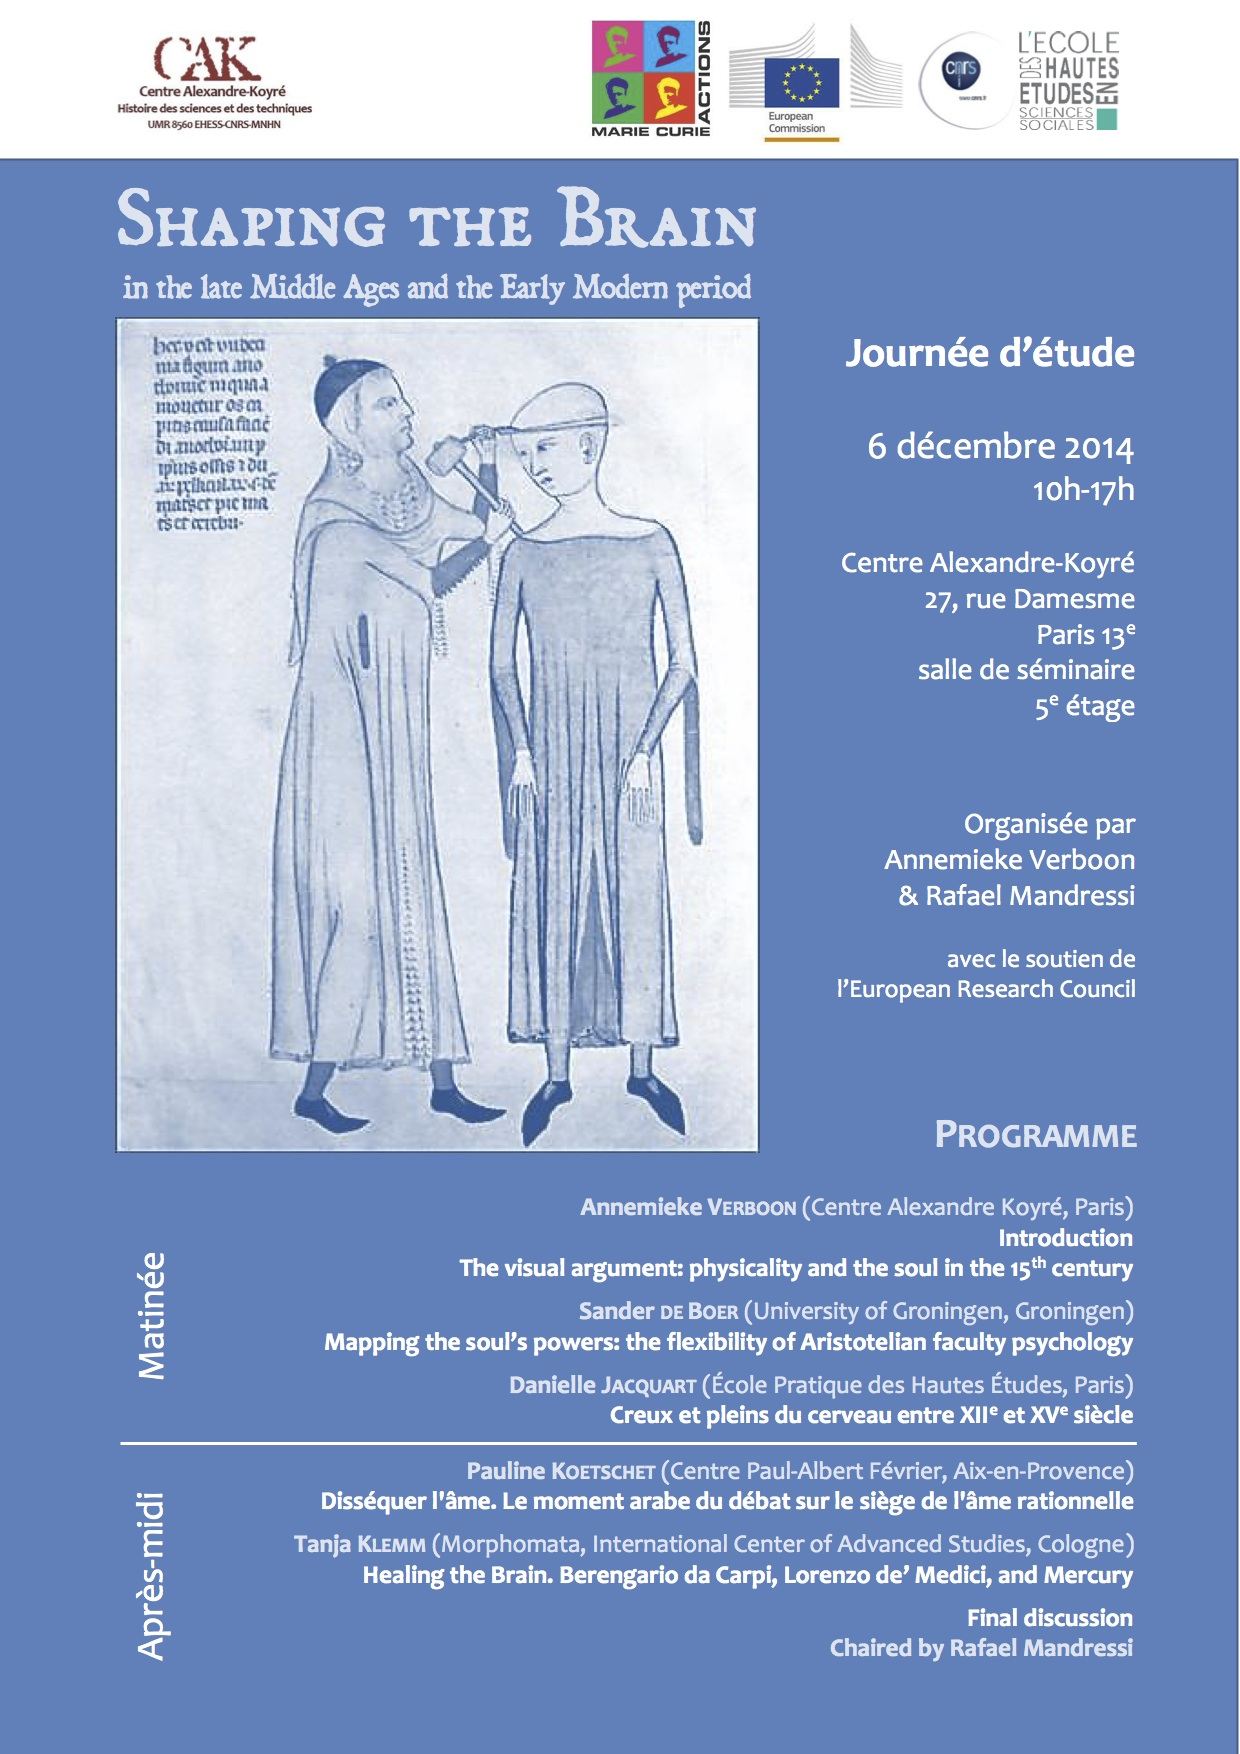 Journée d'étude : Shaping the Brain in the late Middle Ages and the Early Modern period